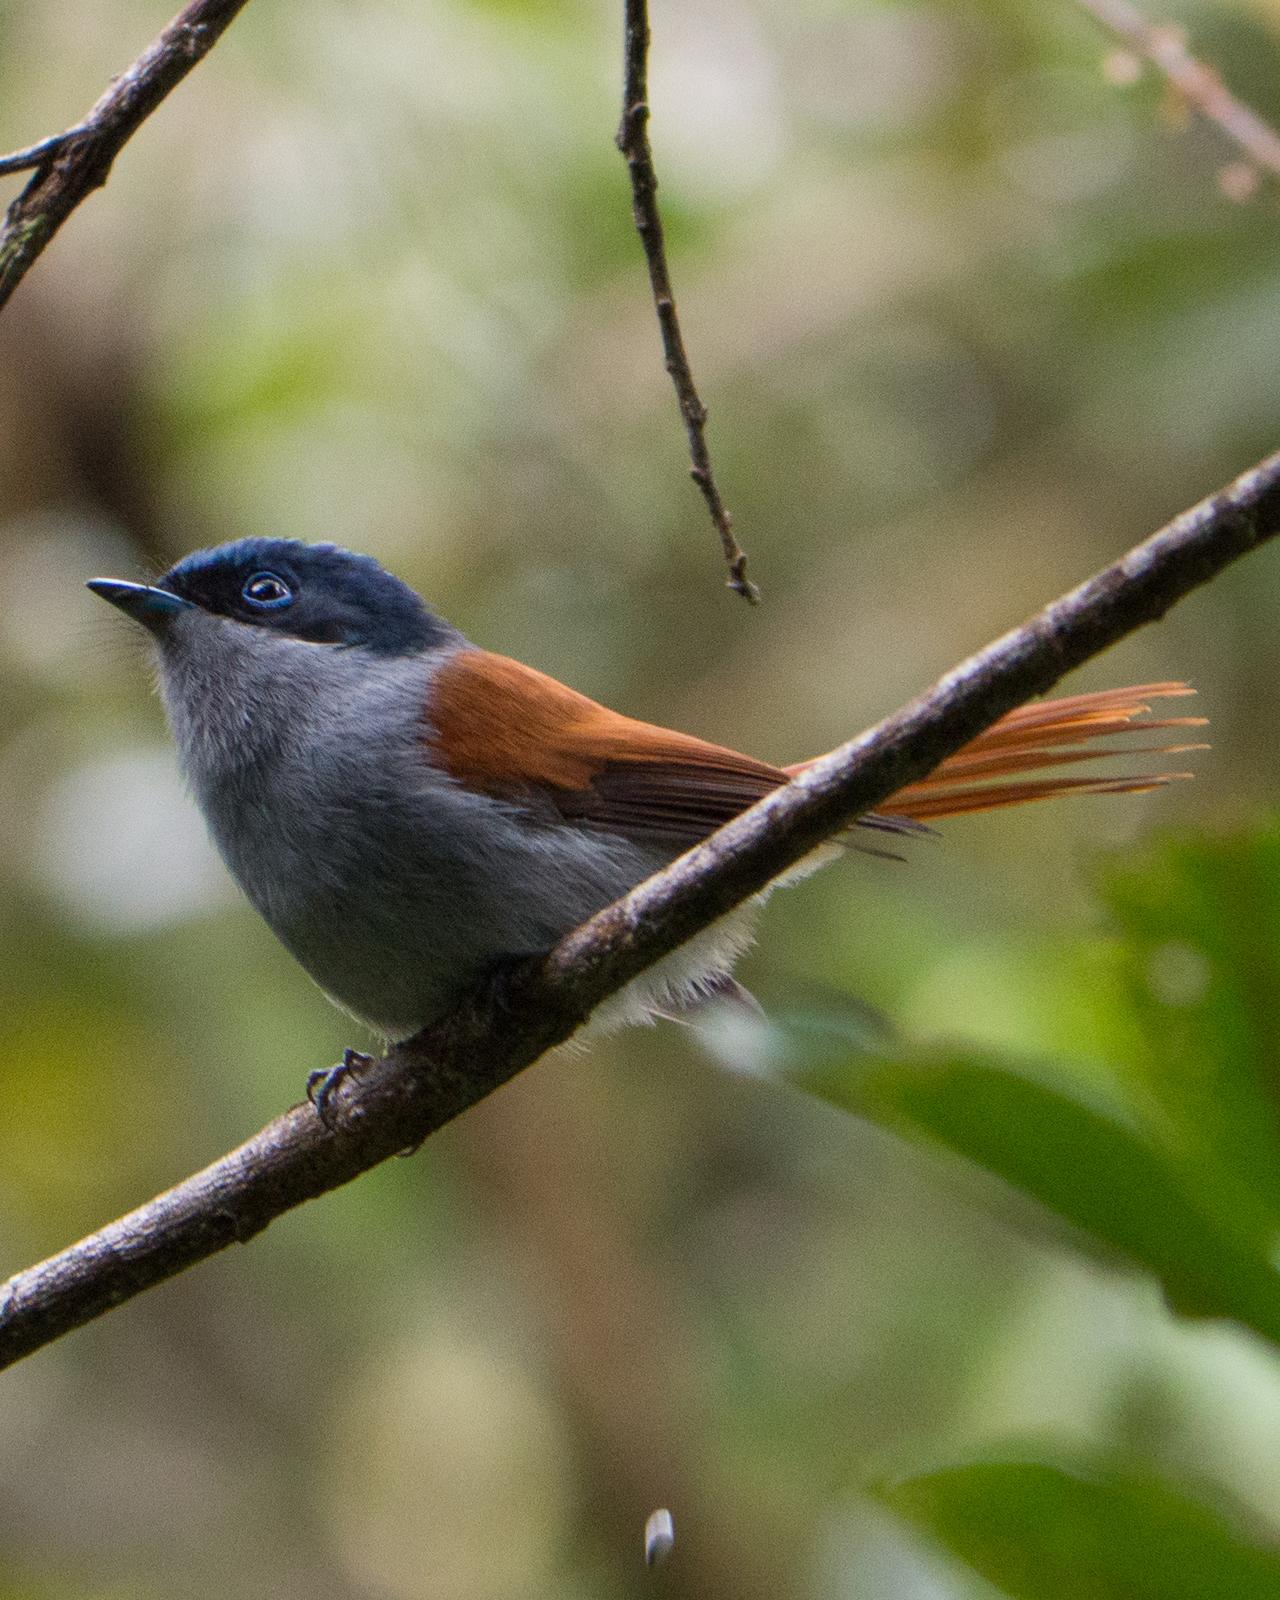 Mascarene Paradise-Flycatcher Photo by Randy Siebert